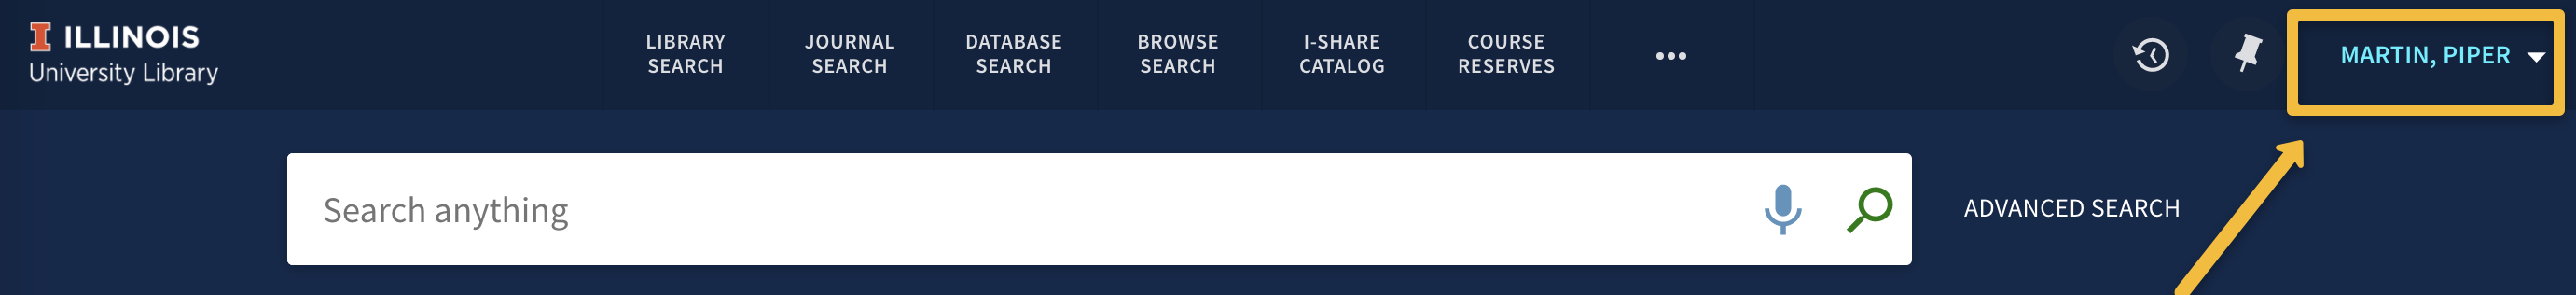 image of user name in upper right of screen once logged into your account